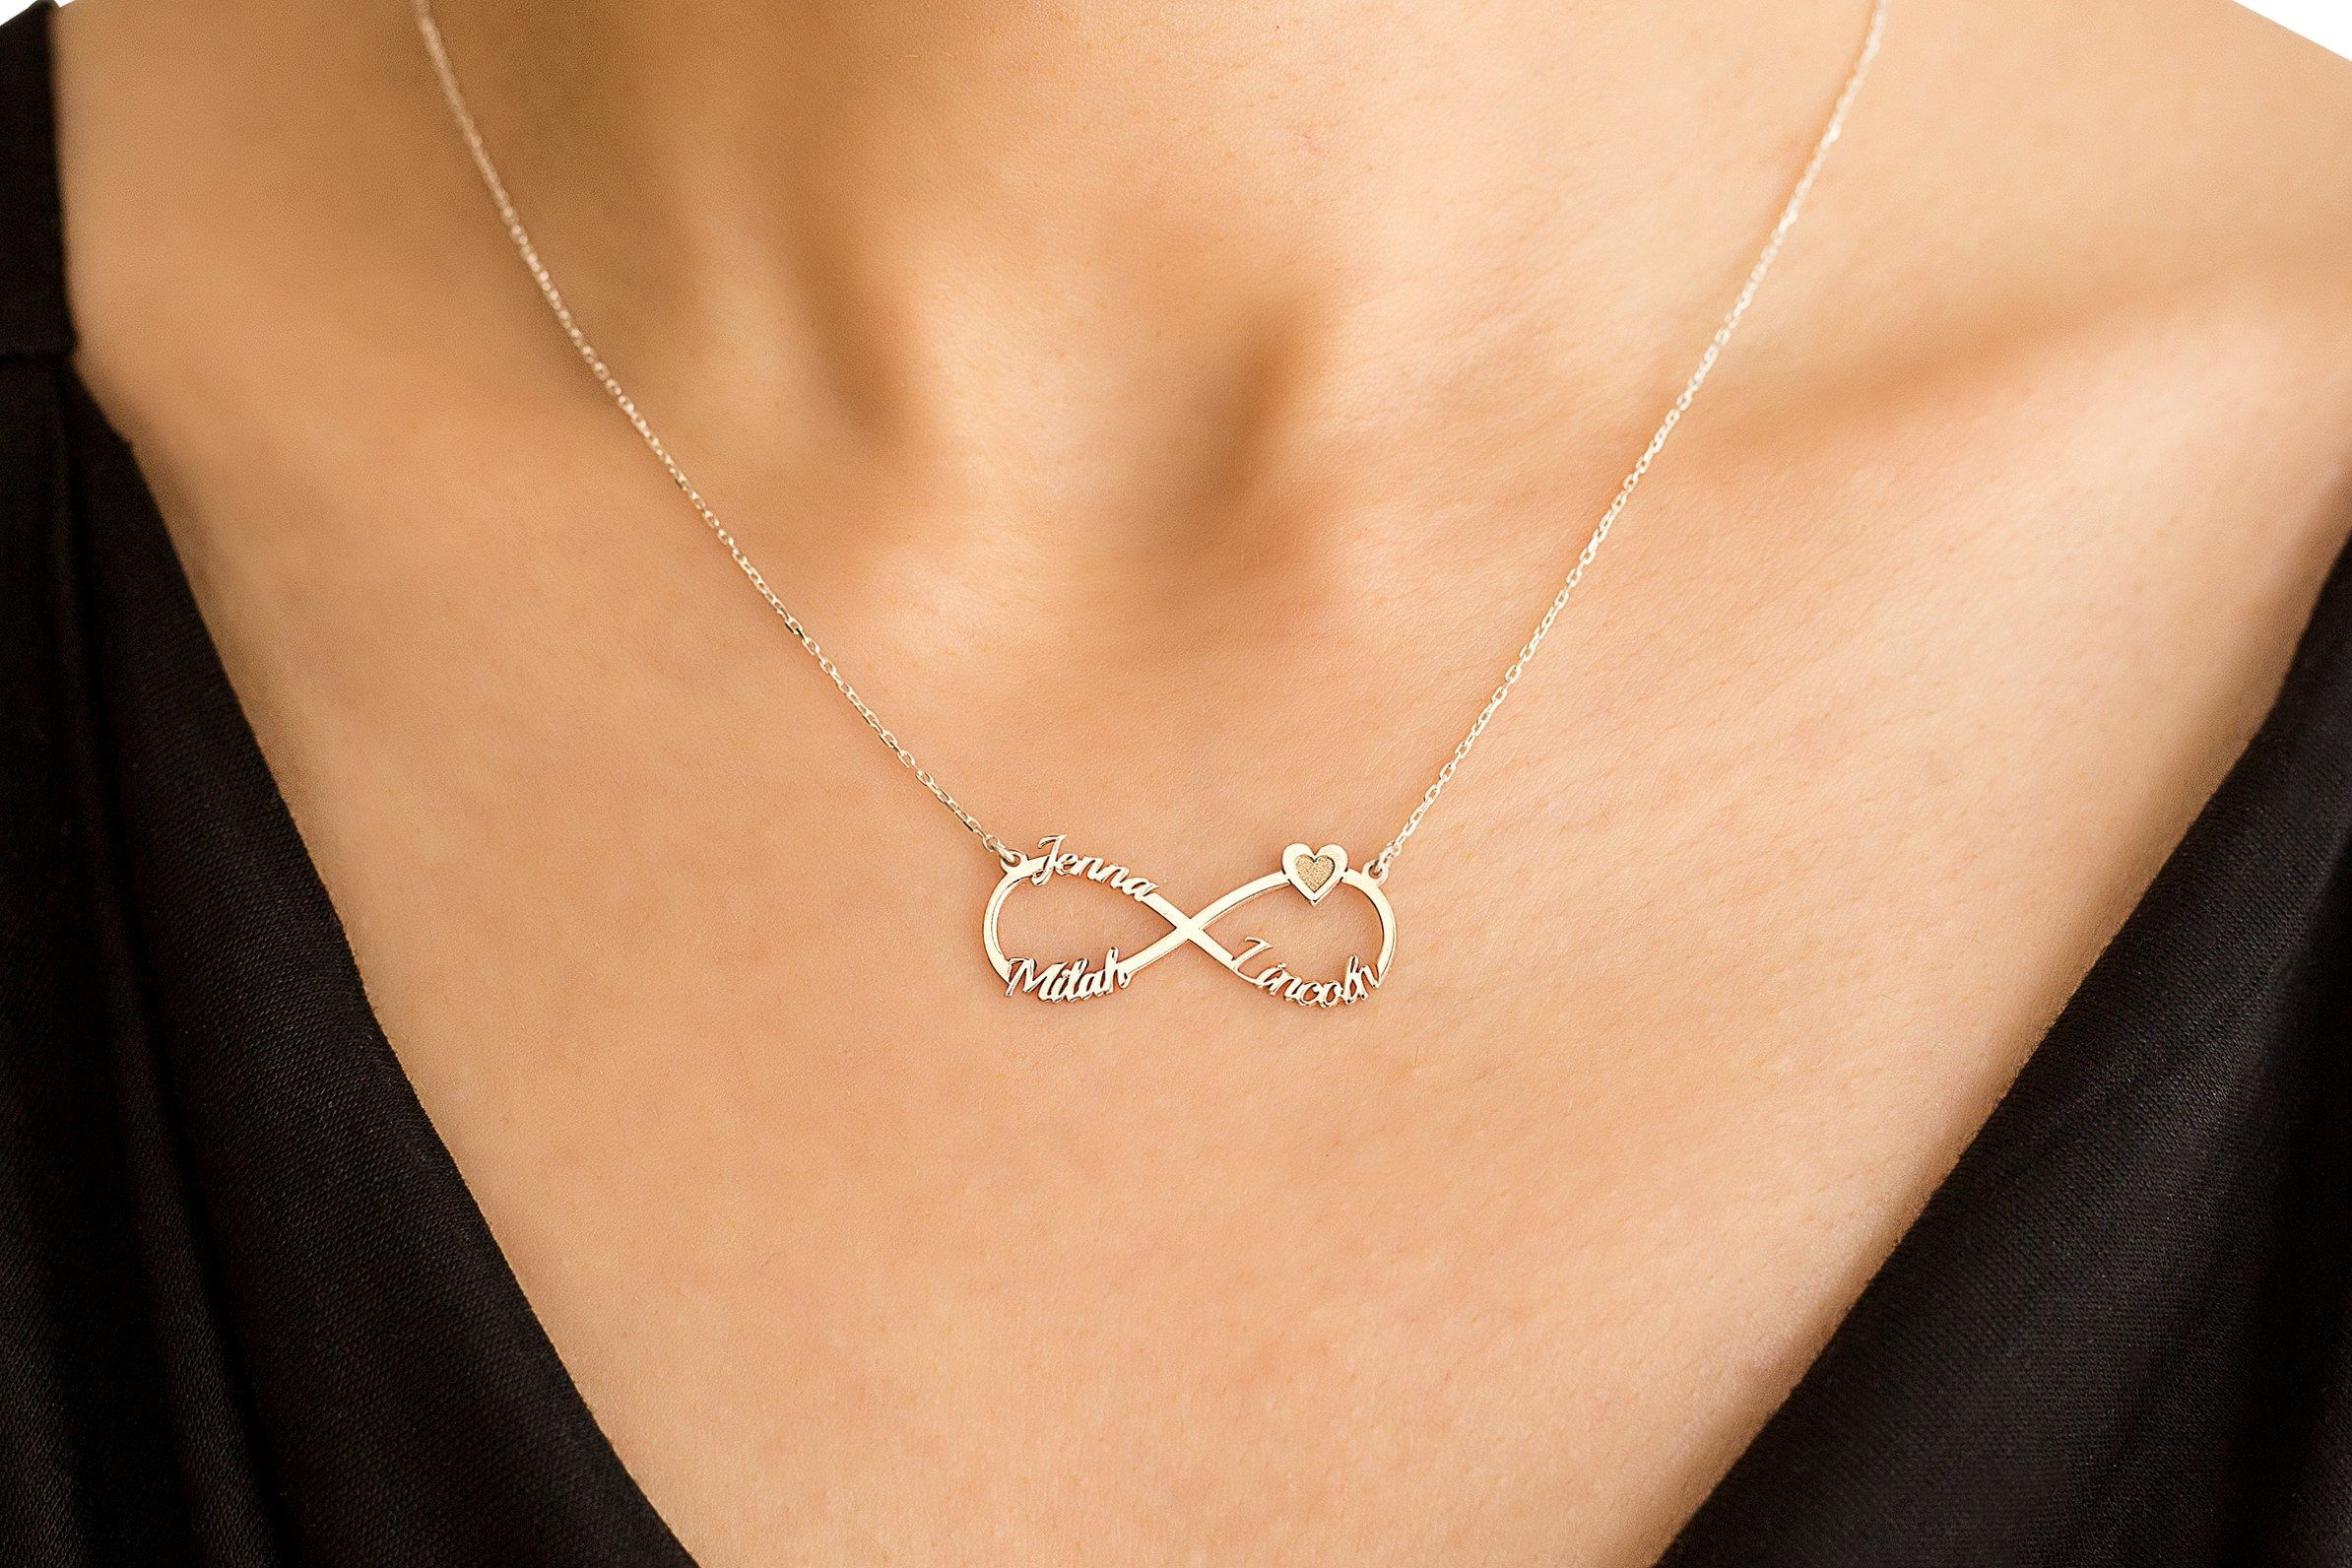 Handmade Infinity Name Necklace Three Names Necklace Love